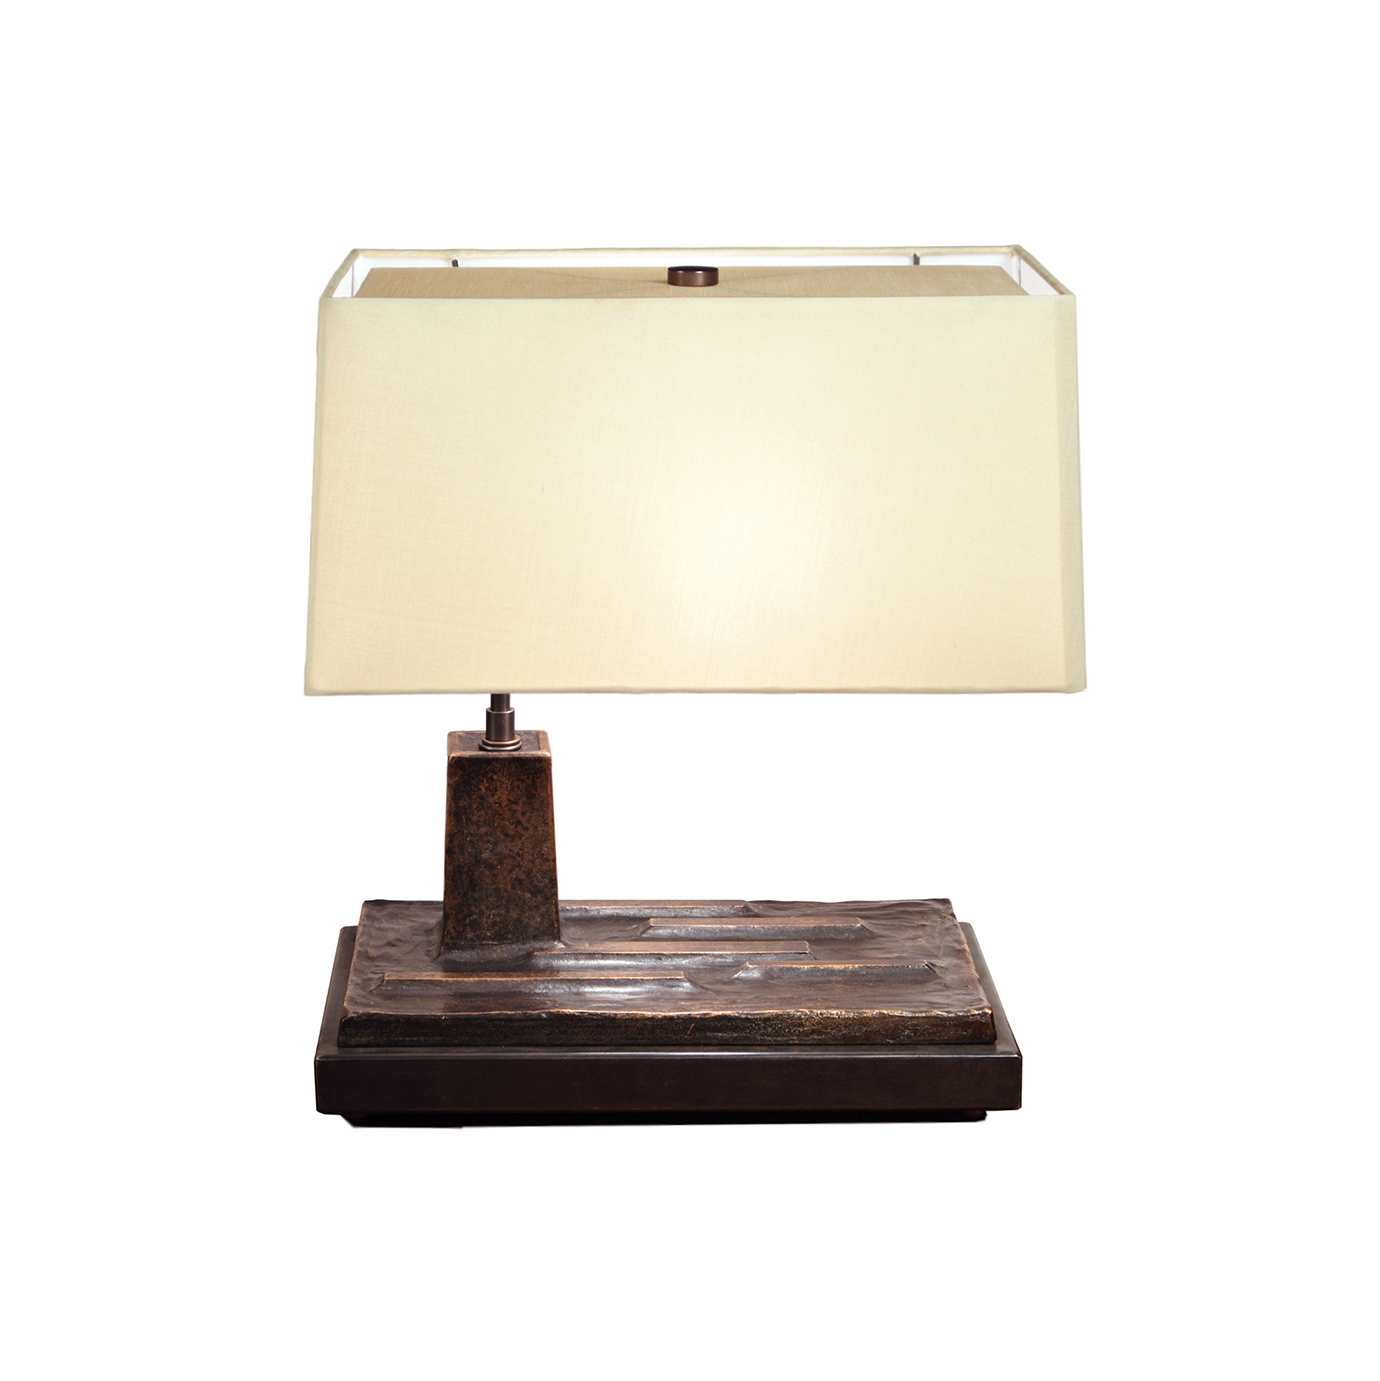 Insurgo Table Lamp by Chuck Moffit